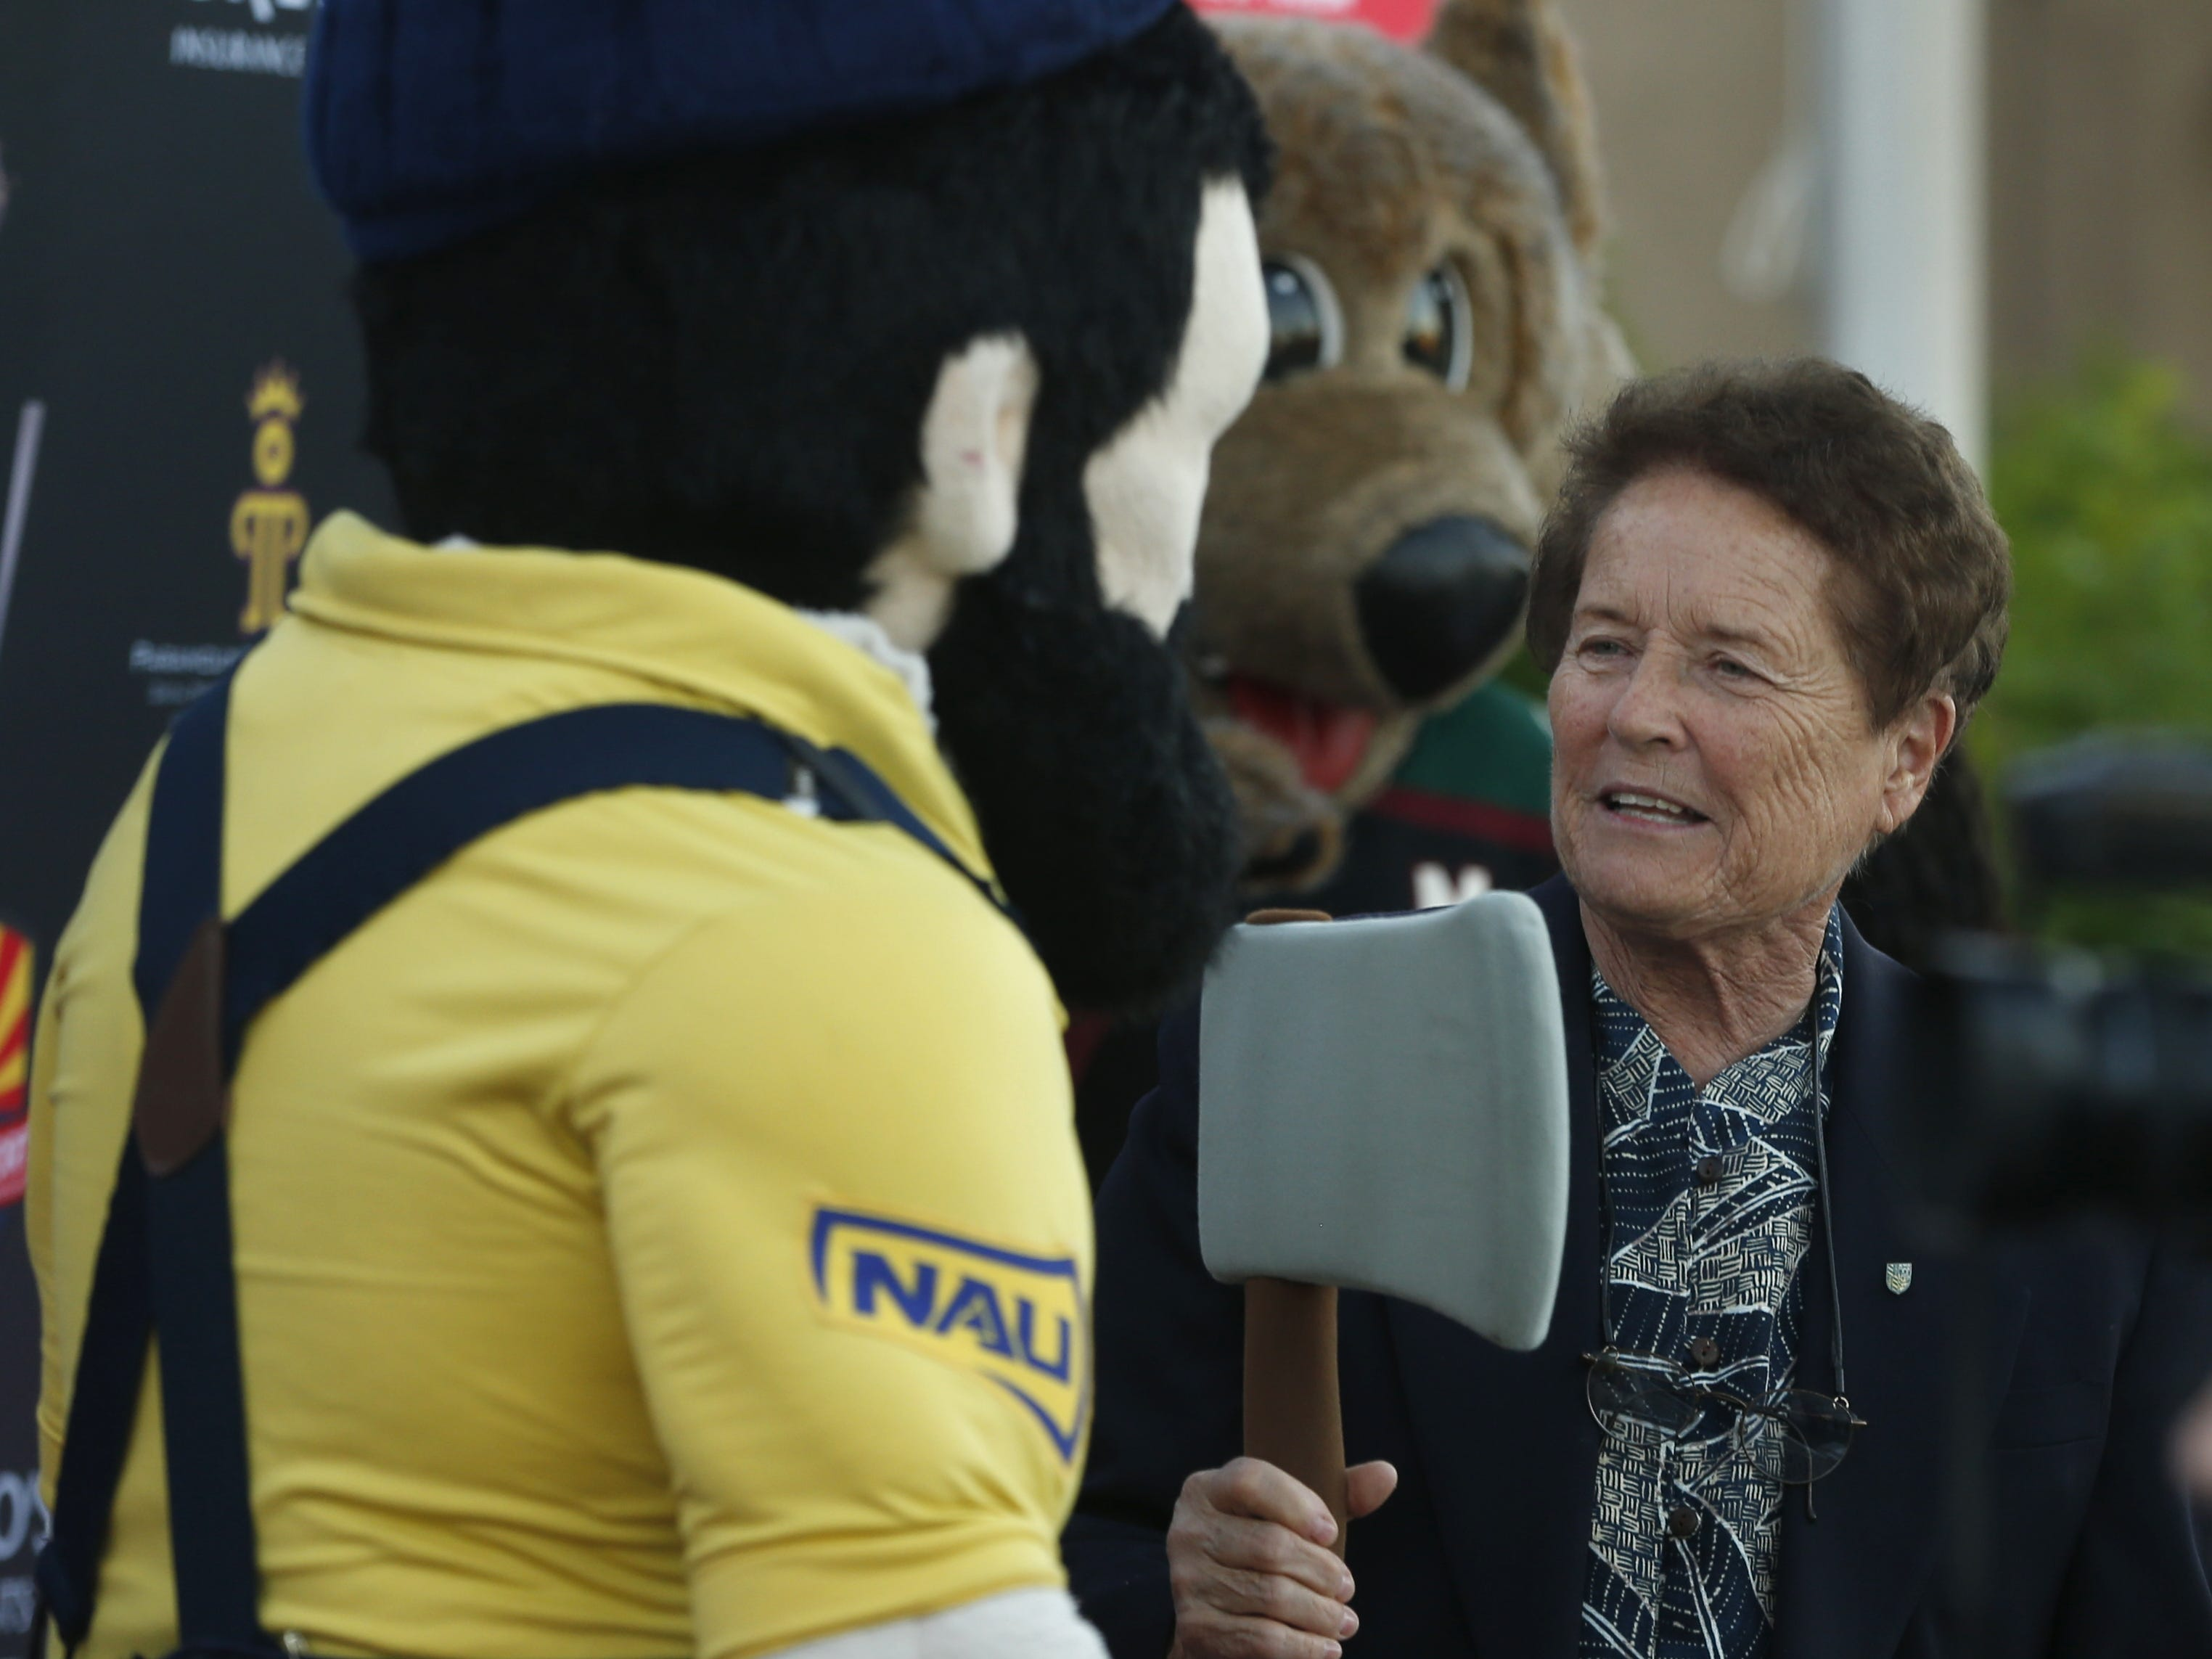 Sister Lynn Winsor takes the axe of Louie the NAU Lumberjack before the Arizona Sports Hall of Fame induction ceremony at the Scottsdale Plaza Resort in Scottsdale, Ariz. on November 1, 2018.